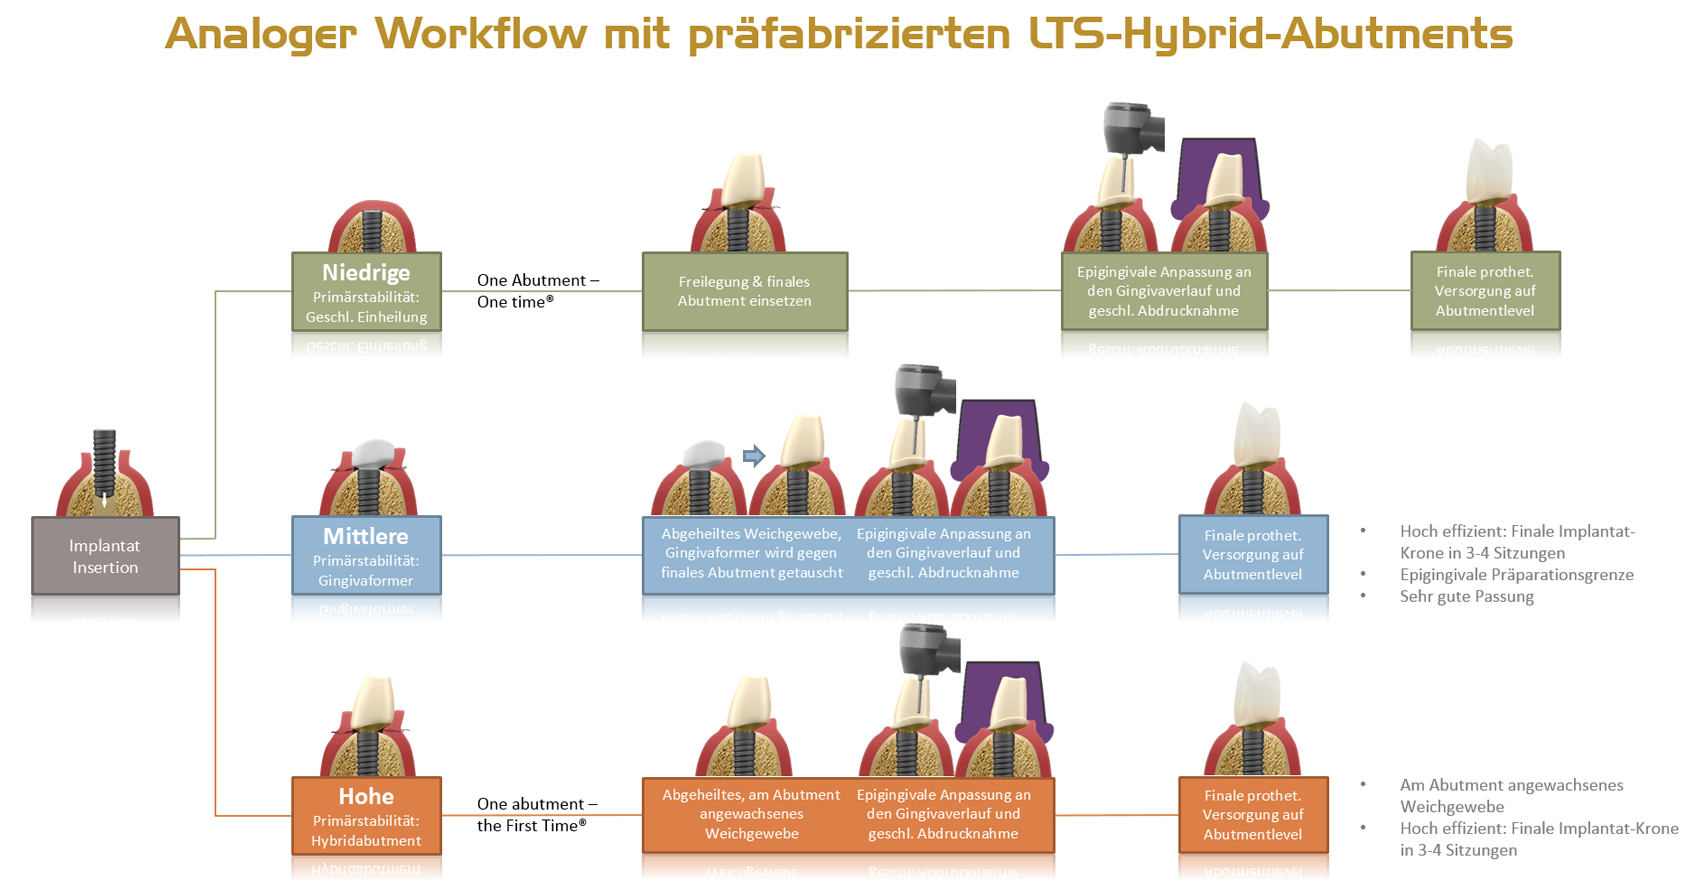 a4l-lts-base-analoger-workflow-Hybrids-DE